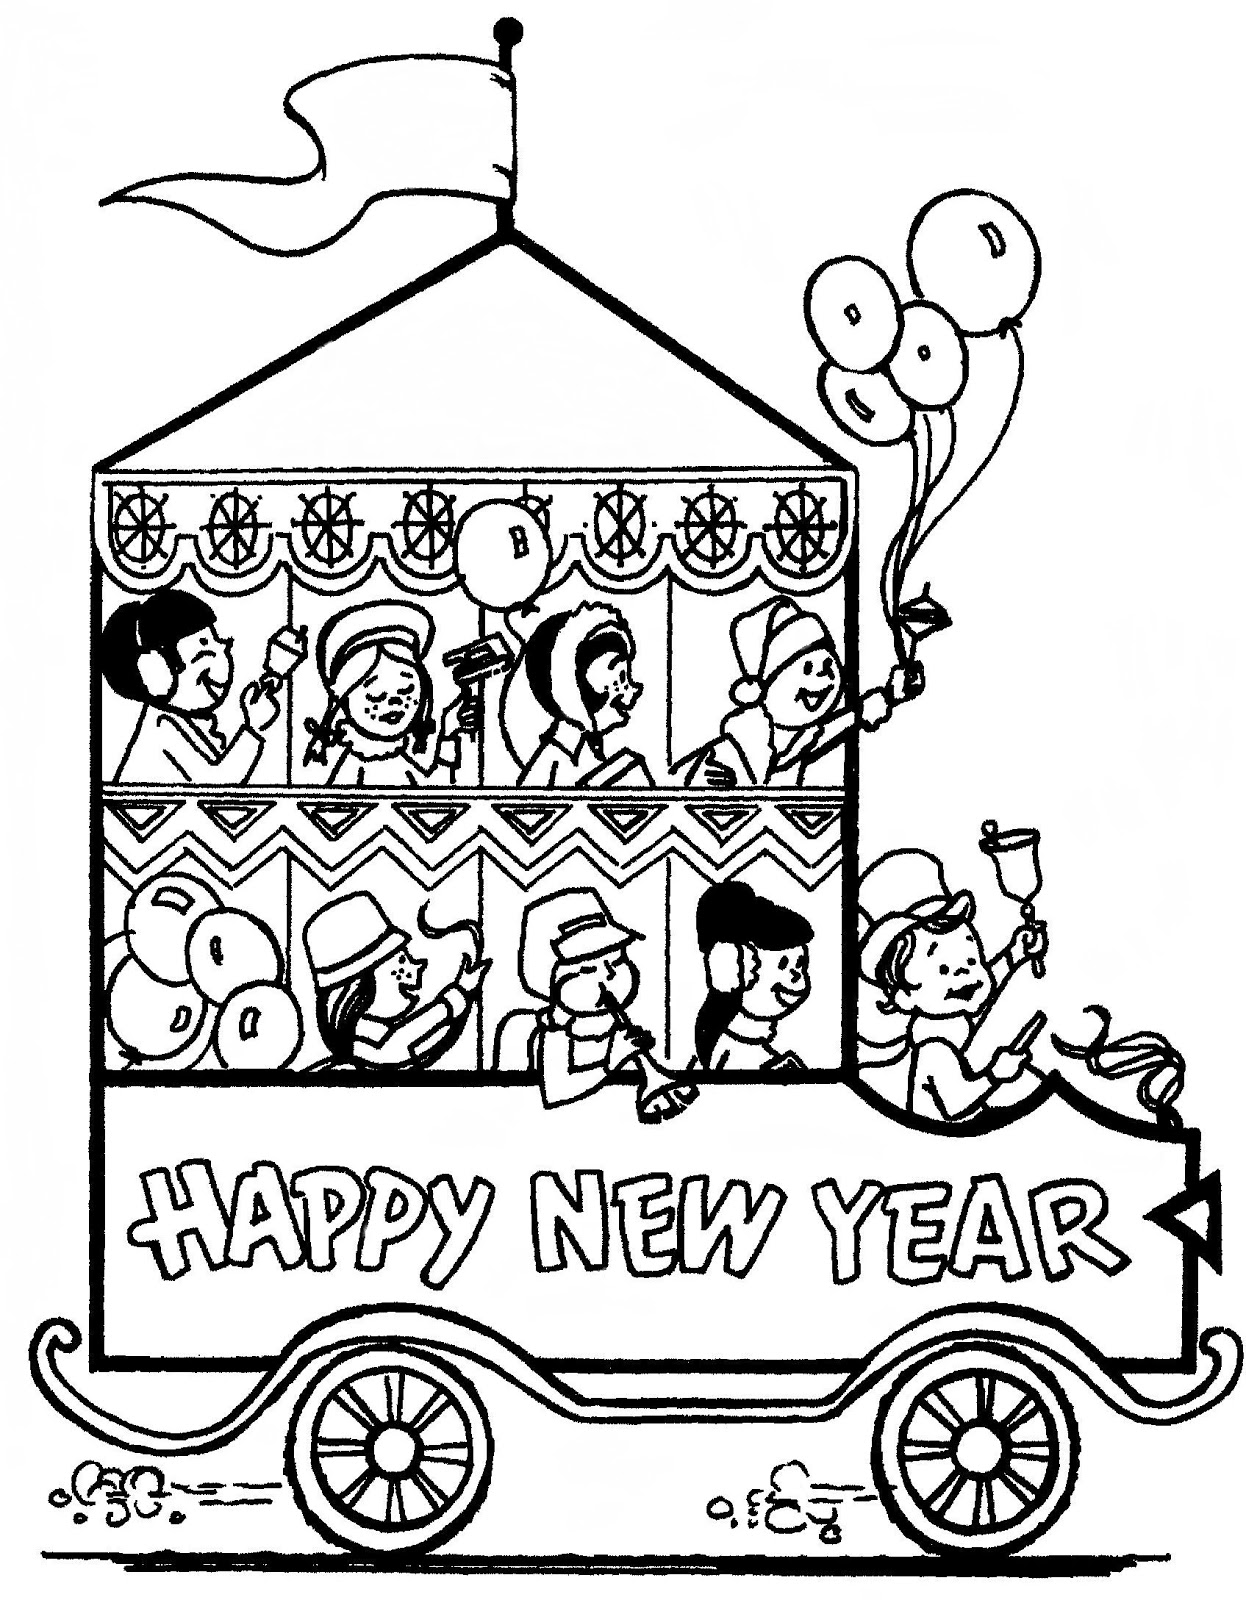 Mostly Paper Dolls Too!: HAPPY NEW YEAR to Everyone!